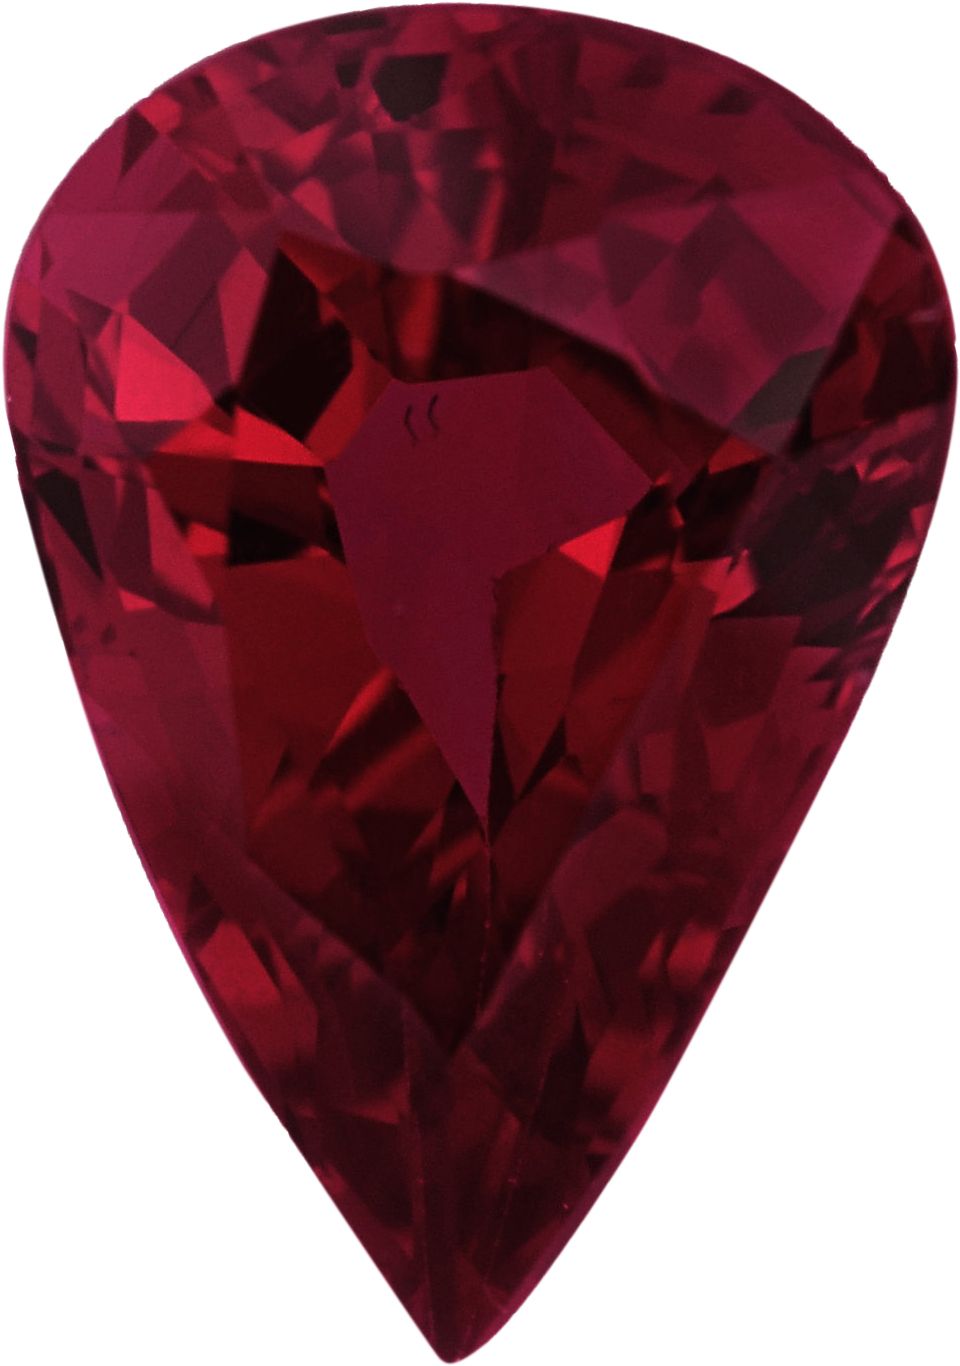 Best Pear Shape Loose Ruby Gem, Red Color, 6.80 x 4.82 mm, 0.76 carats